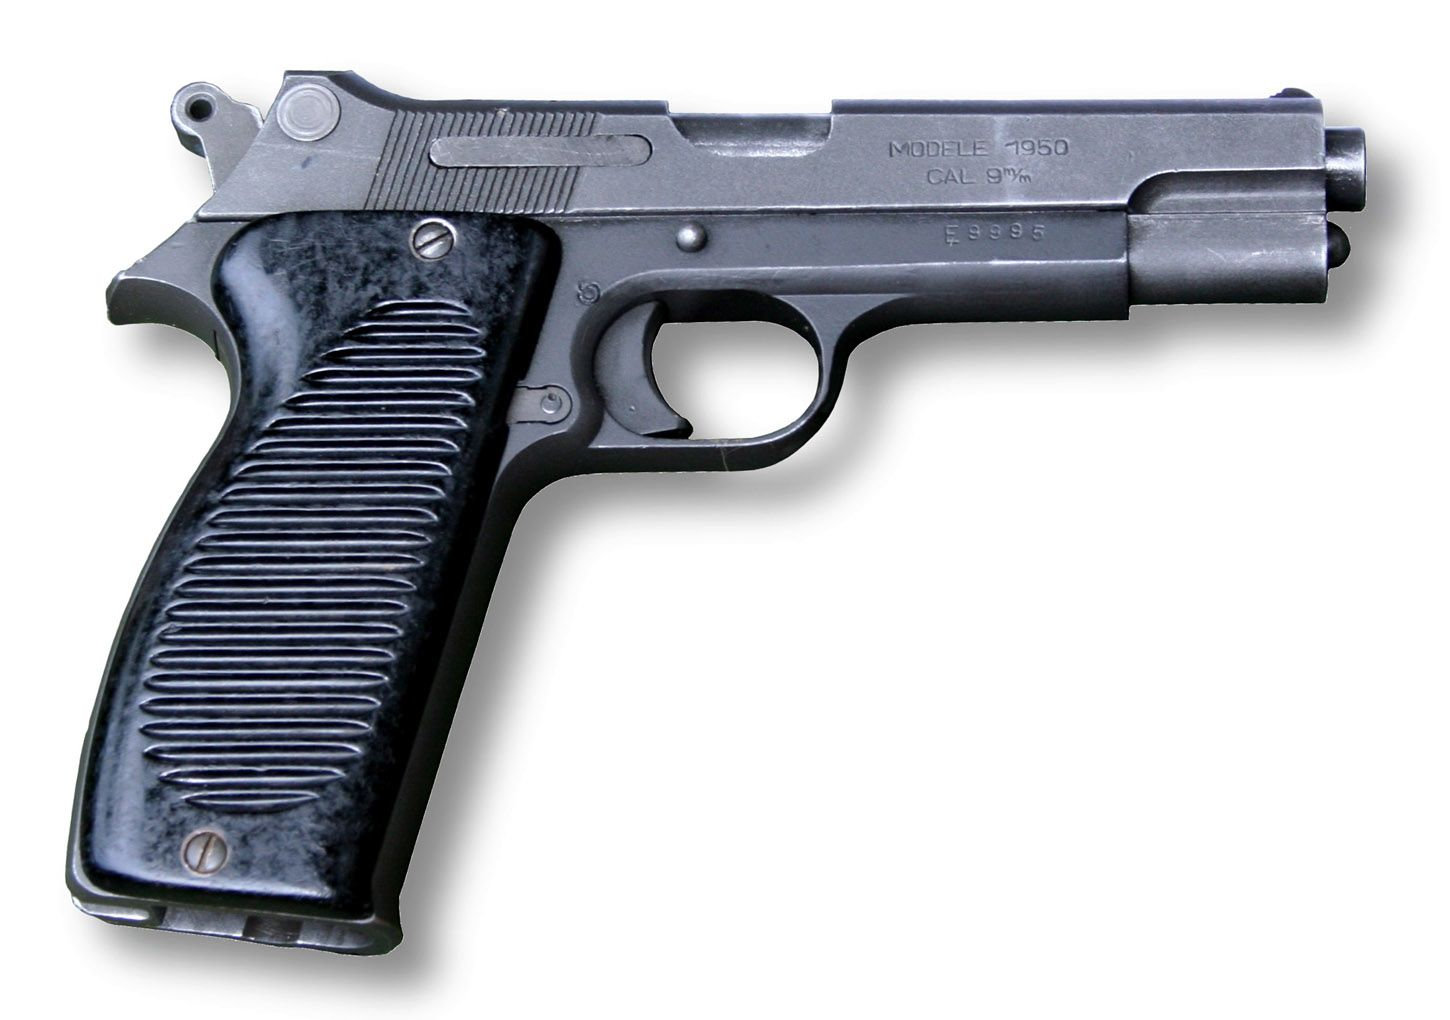 The MAC-50 (also known as the Modèle 1950) is a standard semi-automatic pistol of the French army, adopted in 1950. It replaced the previous series of French pistols, the Modèle 1935A and Modèle 1935S, and was produced between 1950 and 1970. It was first made by MAC (Manufacture d'armes de Châtellerault) then by MAS (Manufacture d'Armes St. Etienne), both of which are French government-owned arms factories. It was superseded by the PAMAS G1, the French-licensed copy of the Beretta 92FS.